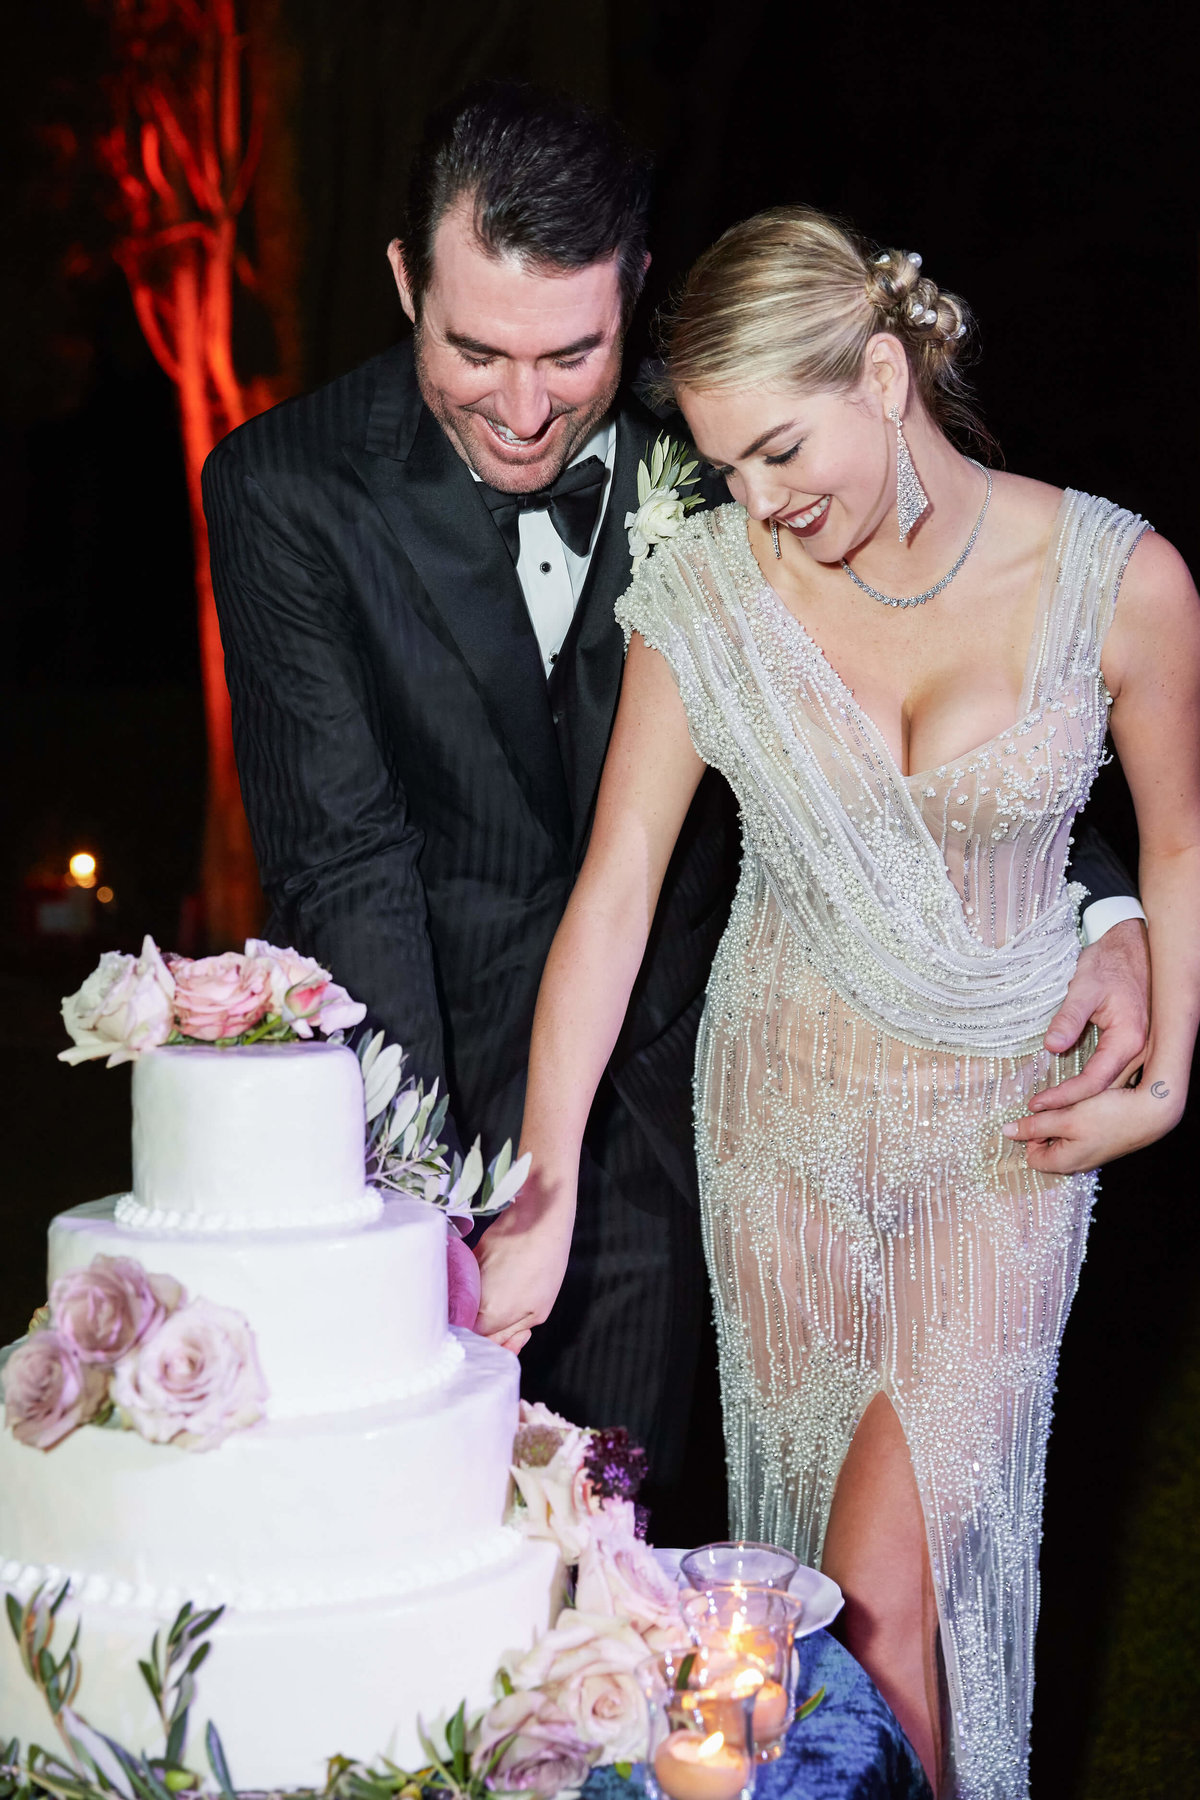 39-KTMerry-weddings-Kate-Upton-cake-cutting